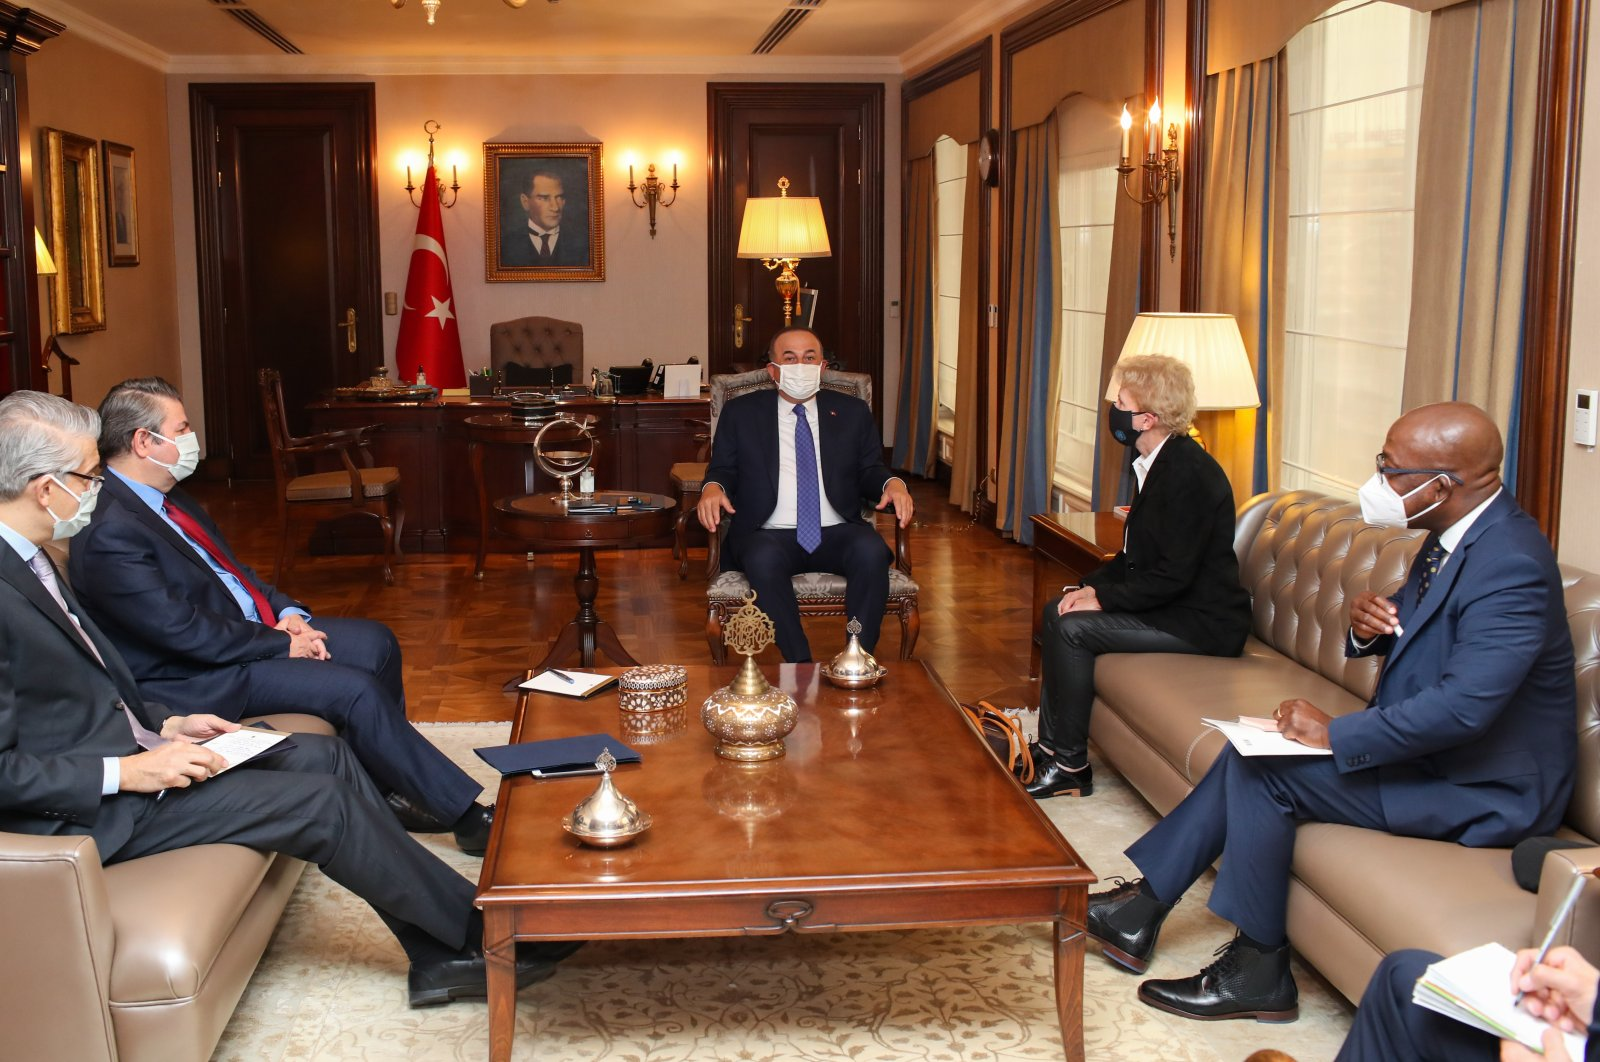 Foreign Minister of Turkey Mevlüt Çavuşoğlu (C) meets with United Nation's special envoy Jane Holl Lute (2nd R), in Ankara, Turkey, March 22, 2021. (AA)